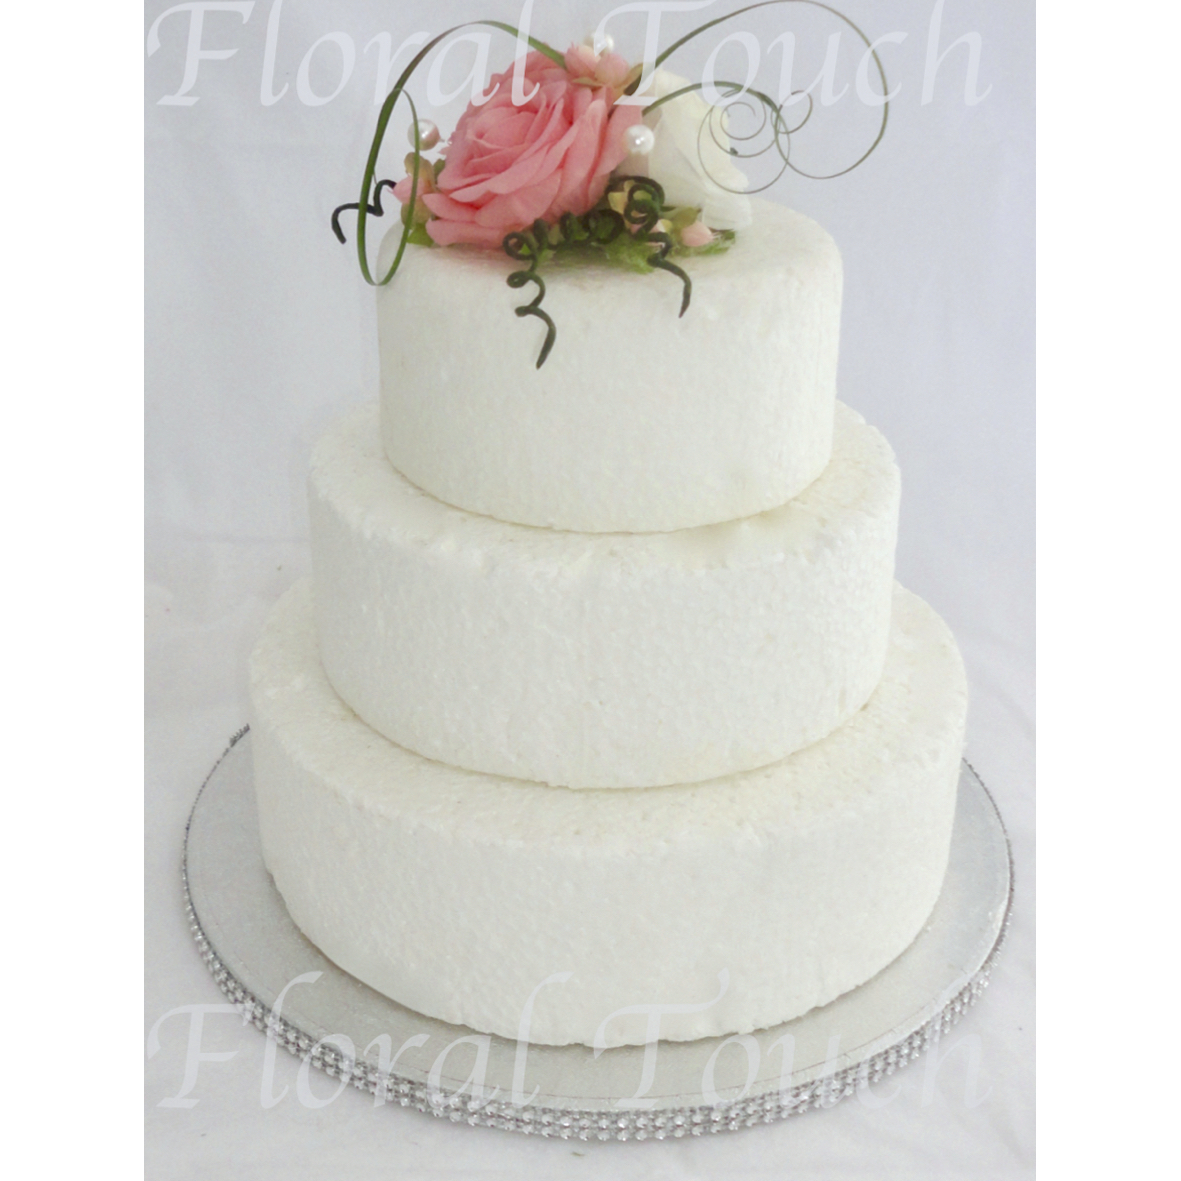 Coral & Ivory Cake Flowers